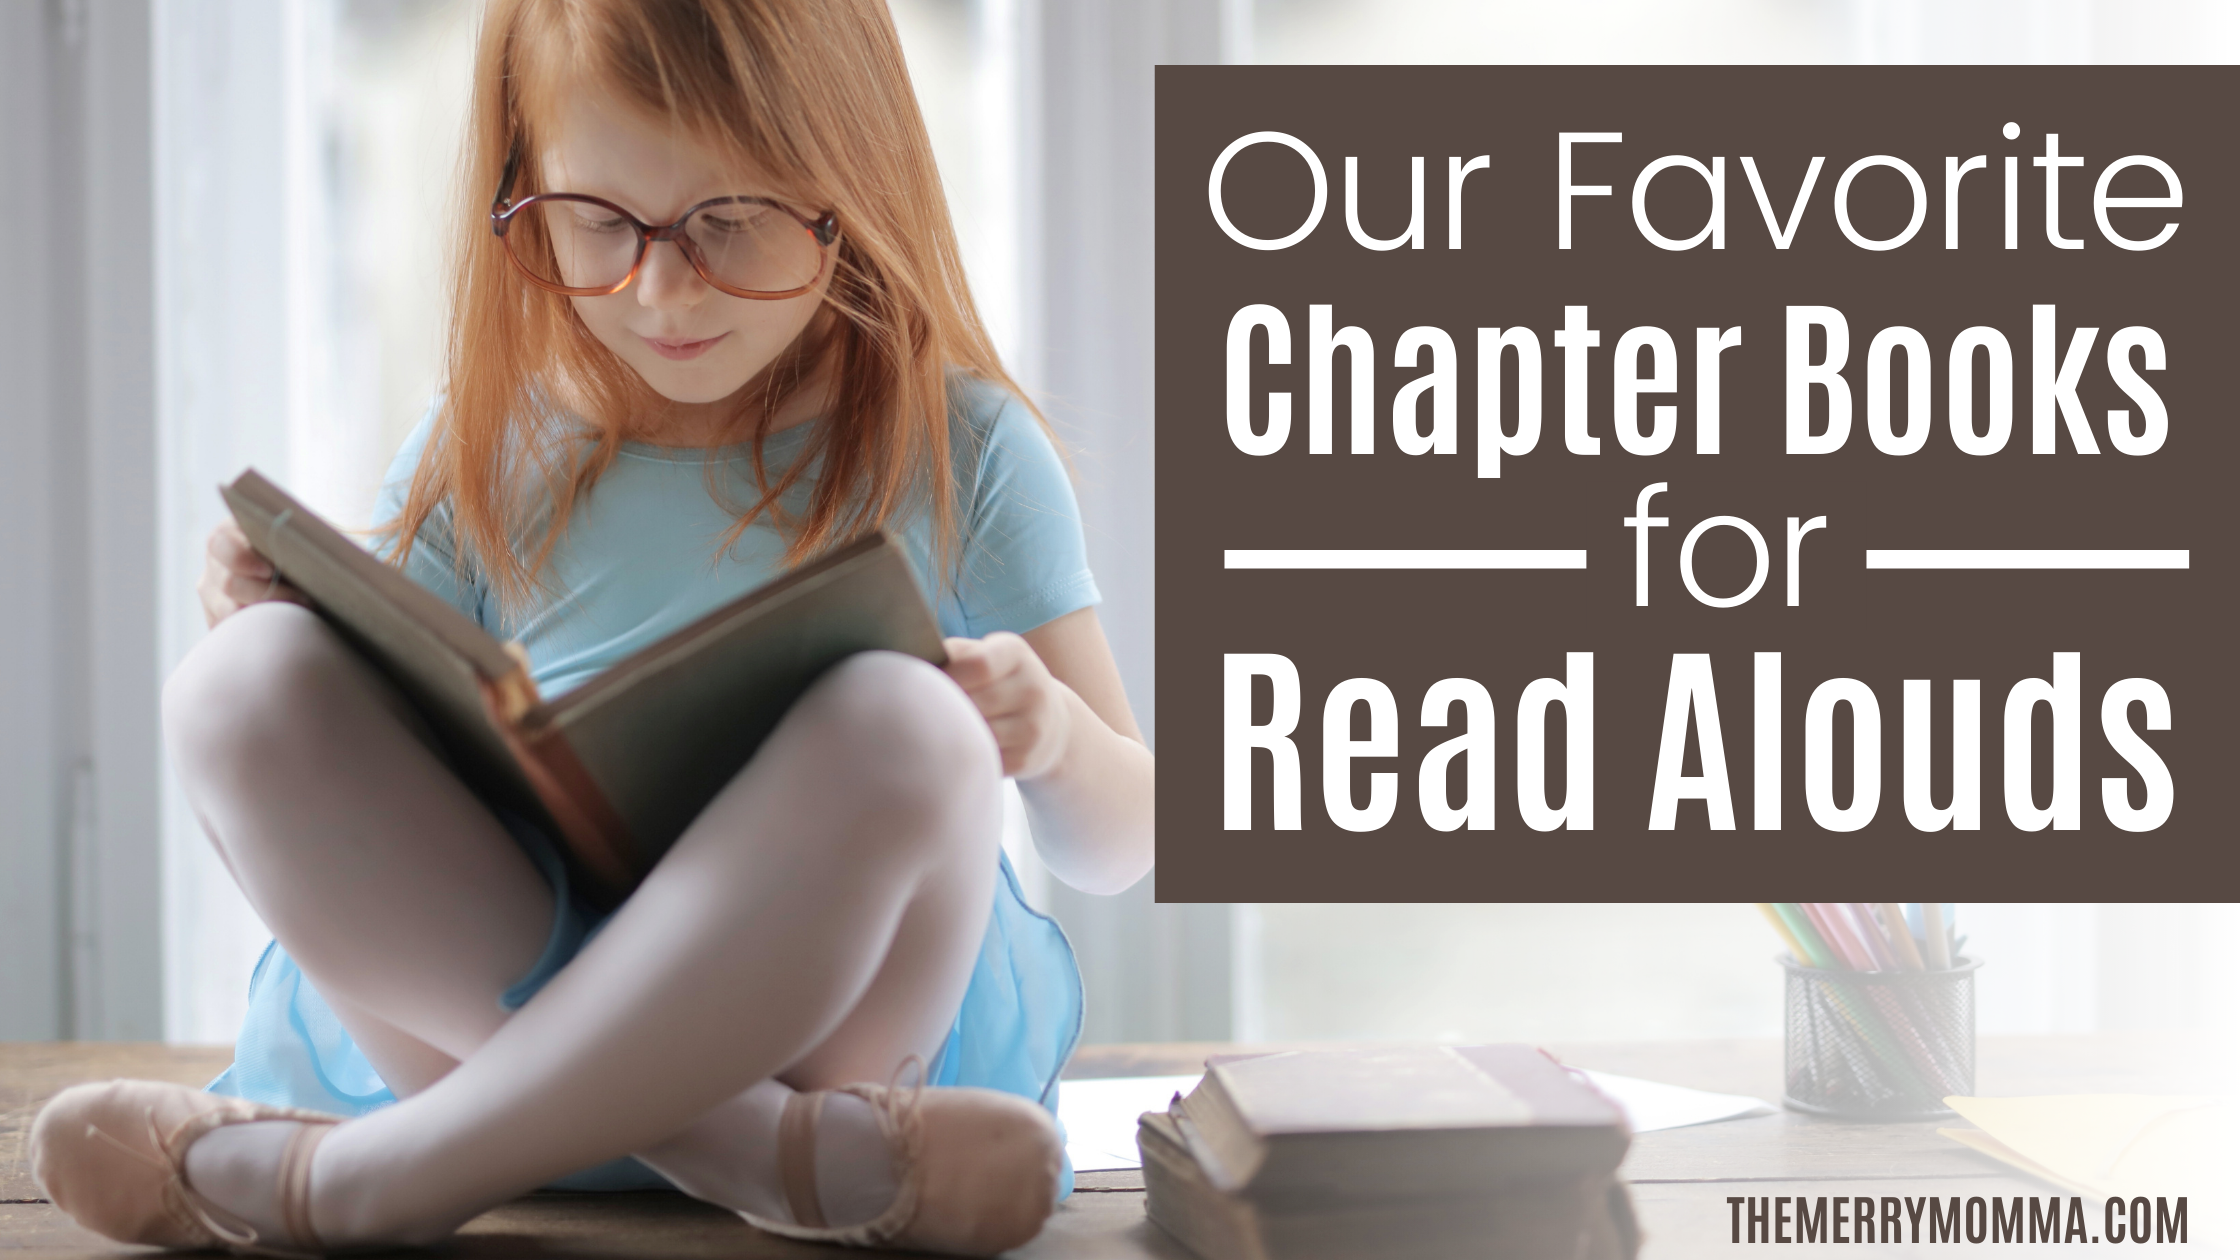 Our Favorite Chapter Books for Read-Alouds | The Merry Momma